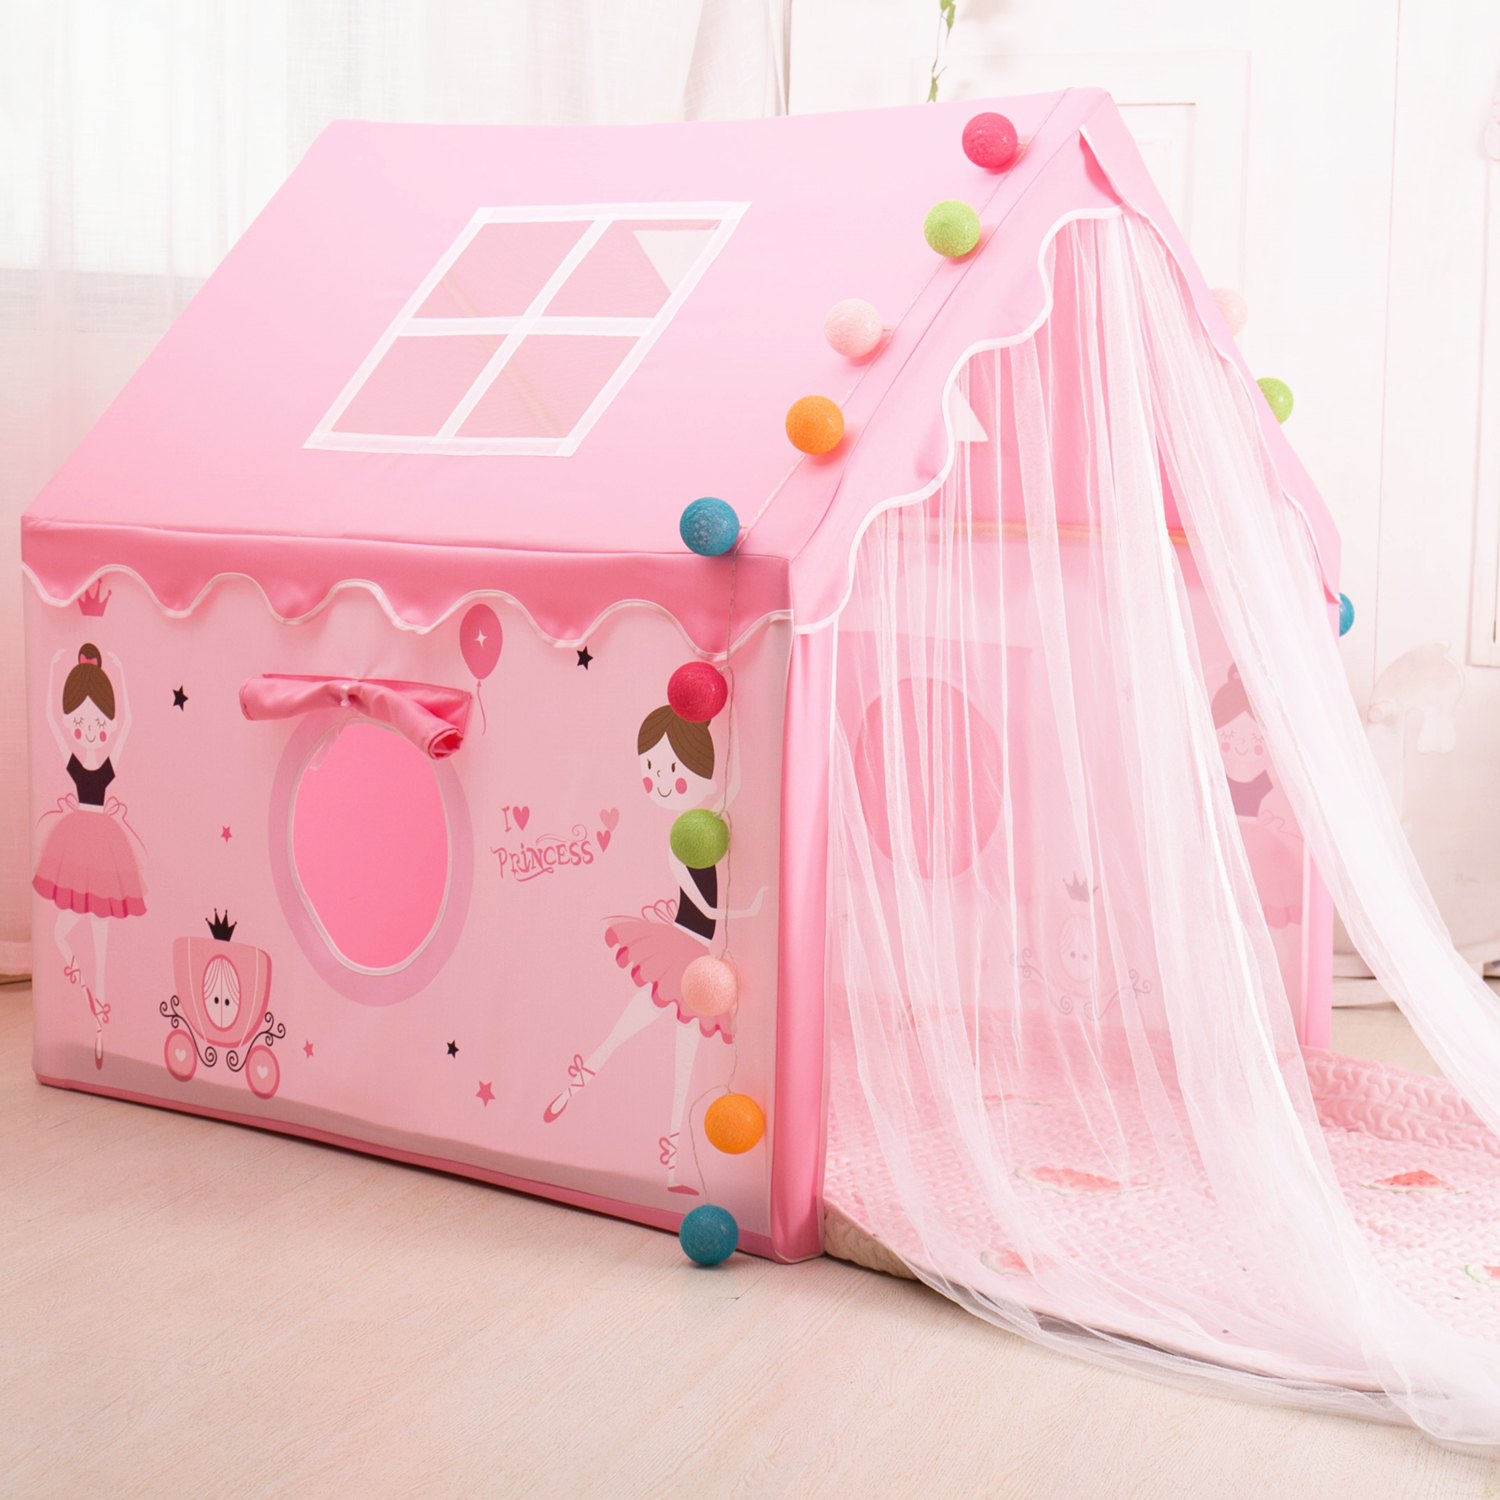 Children's Tent, Playhouse, Indoor Sleep, Princess Playhouse, Girl Boy's House, Castle, Sub Bed, Artifact, Playhouse